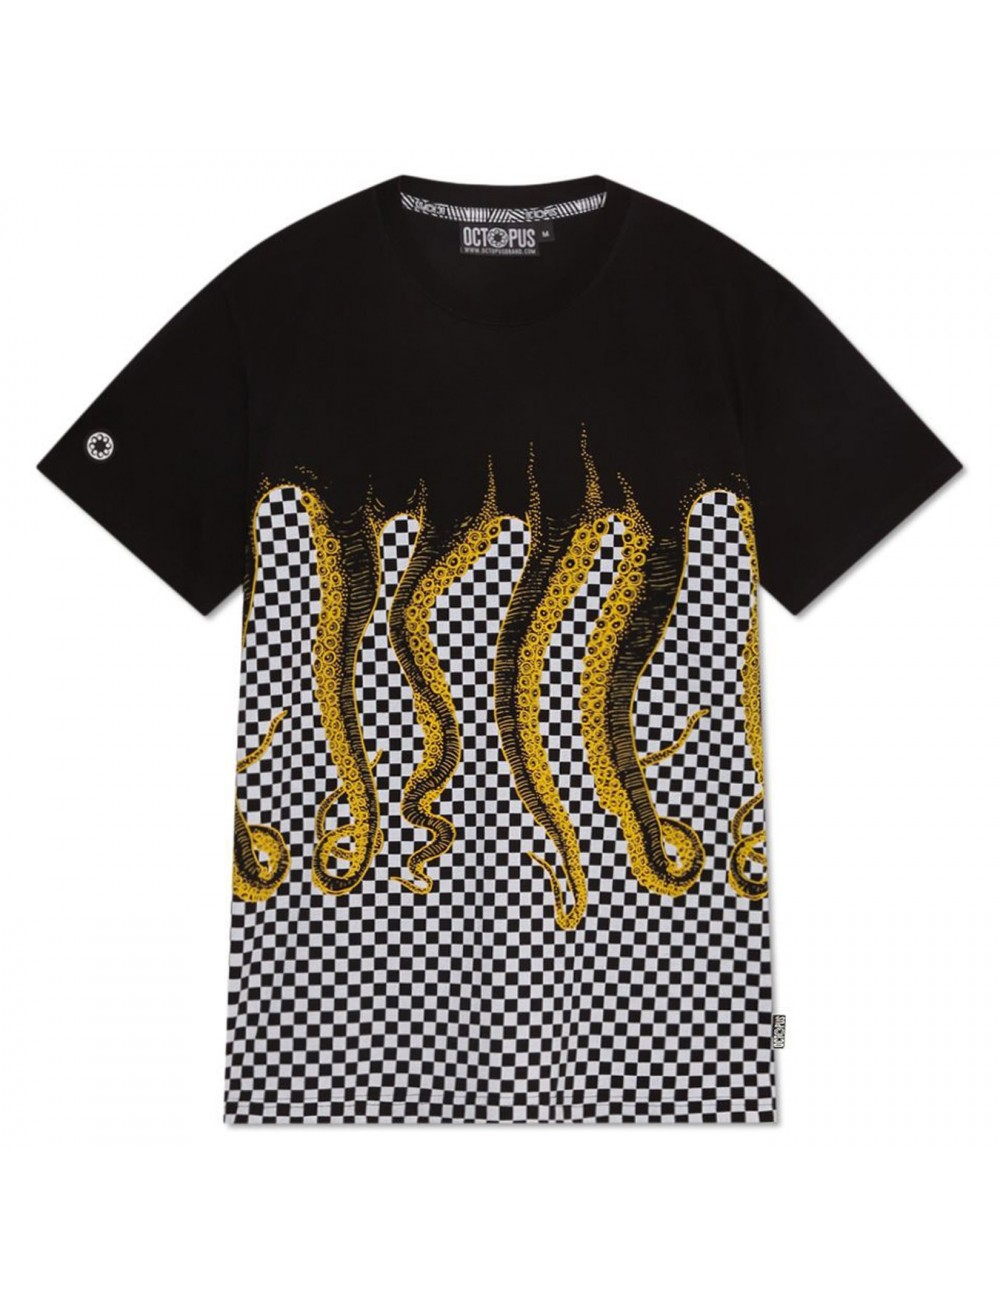 Octopus Octopus checkered tee - 19WOTS13 | Shapestore.it